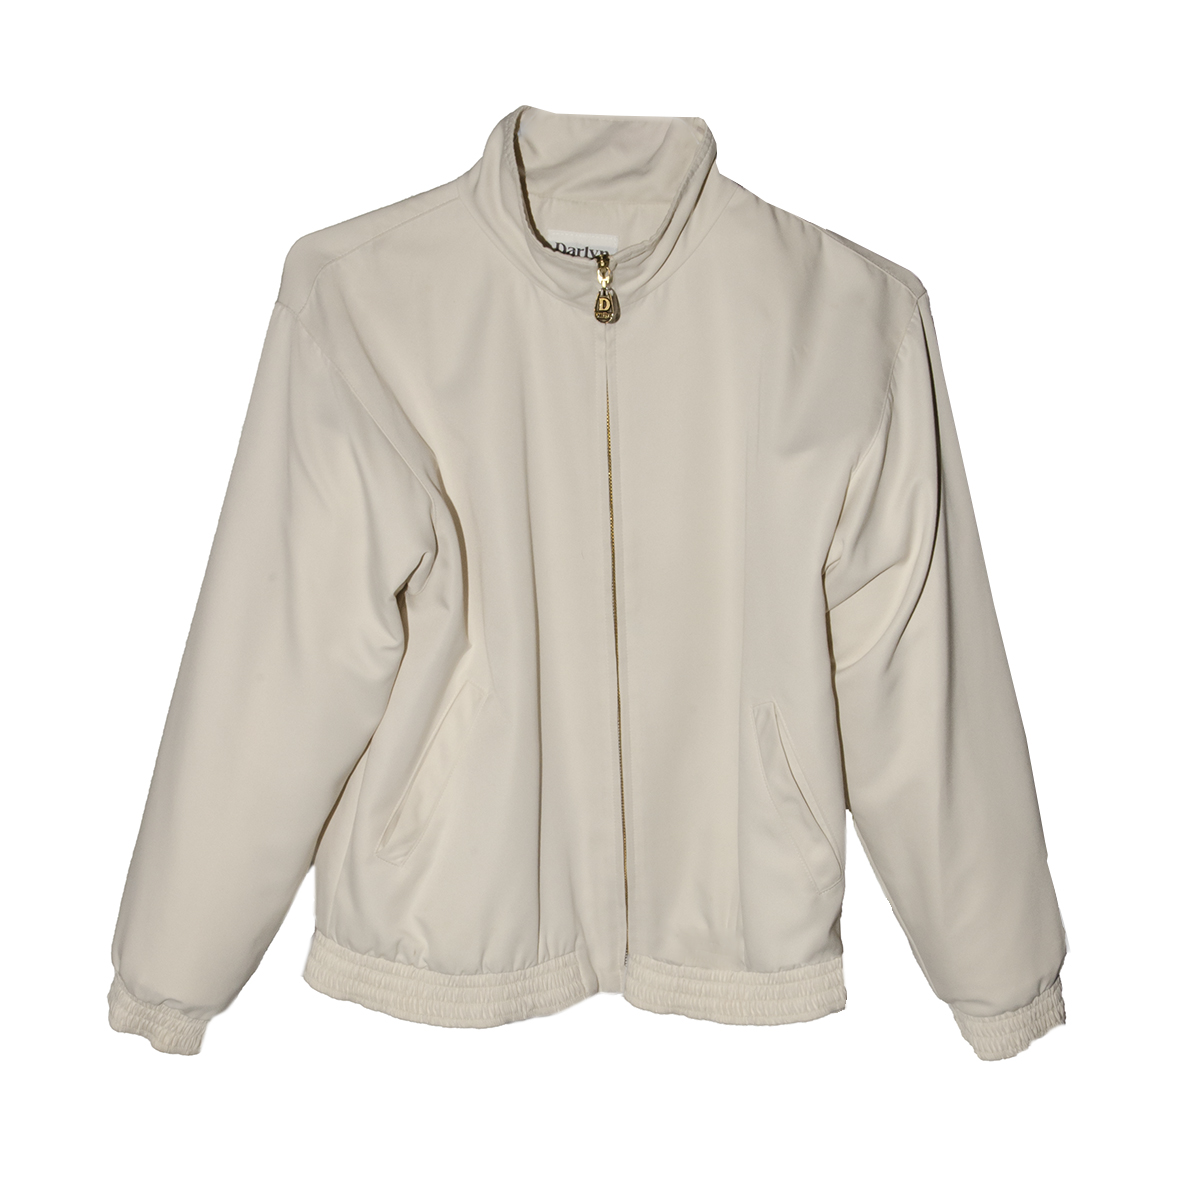 Darlyn Tan Bomber Jacket,